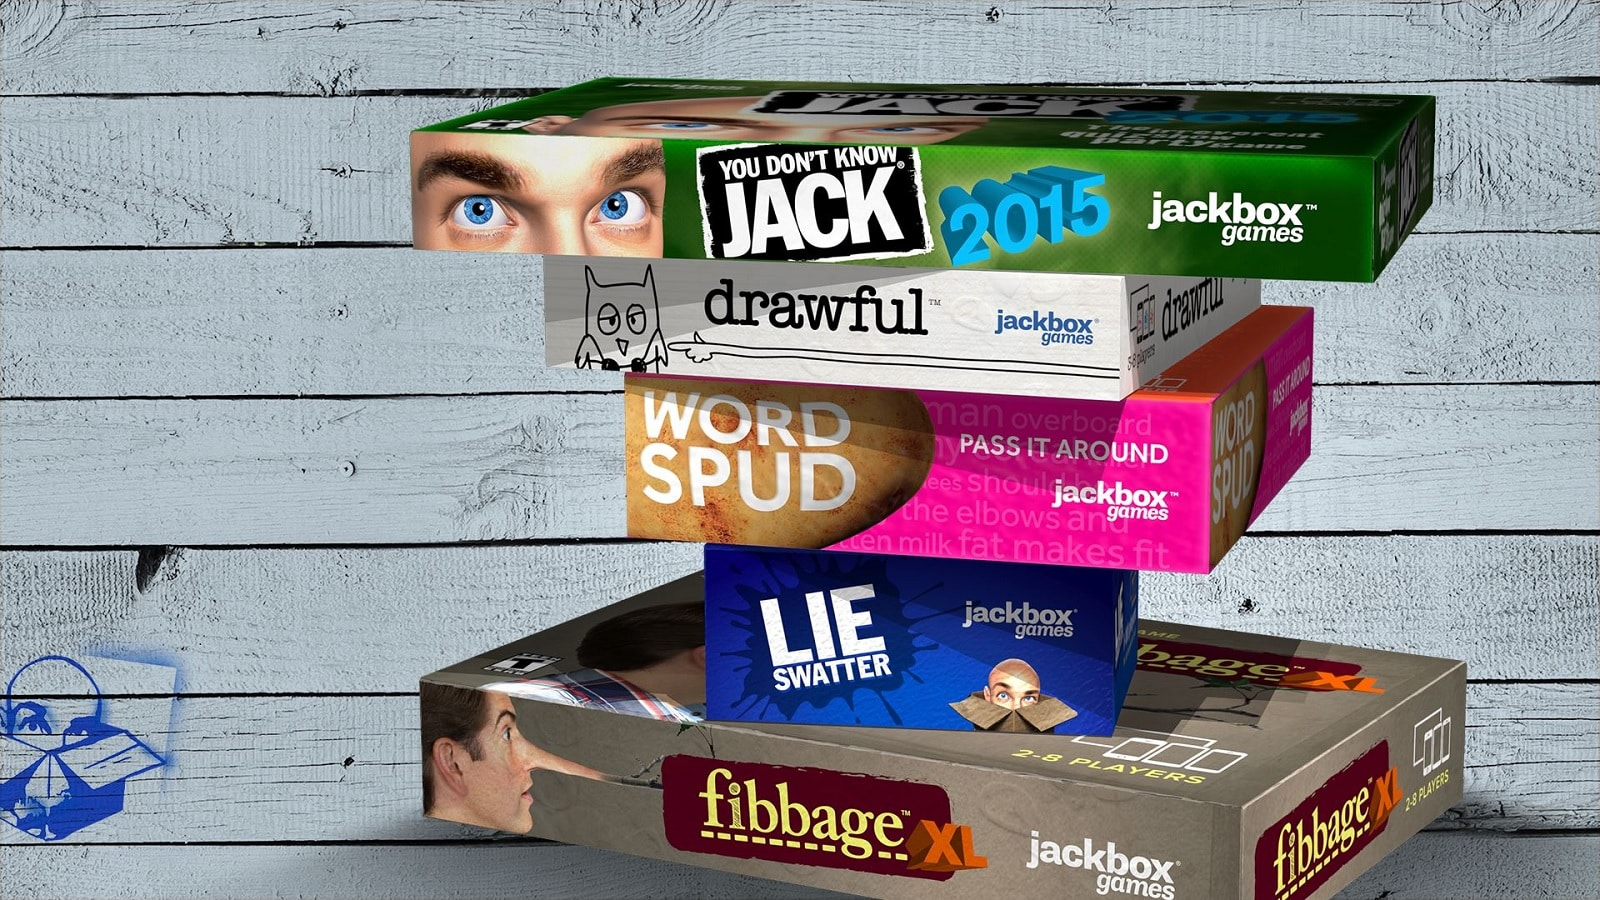 jackbox games stacked up